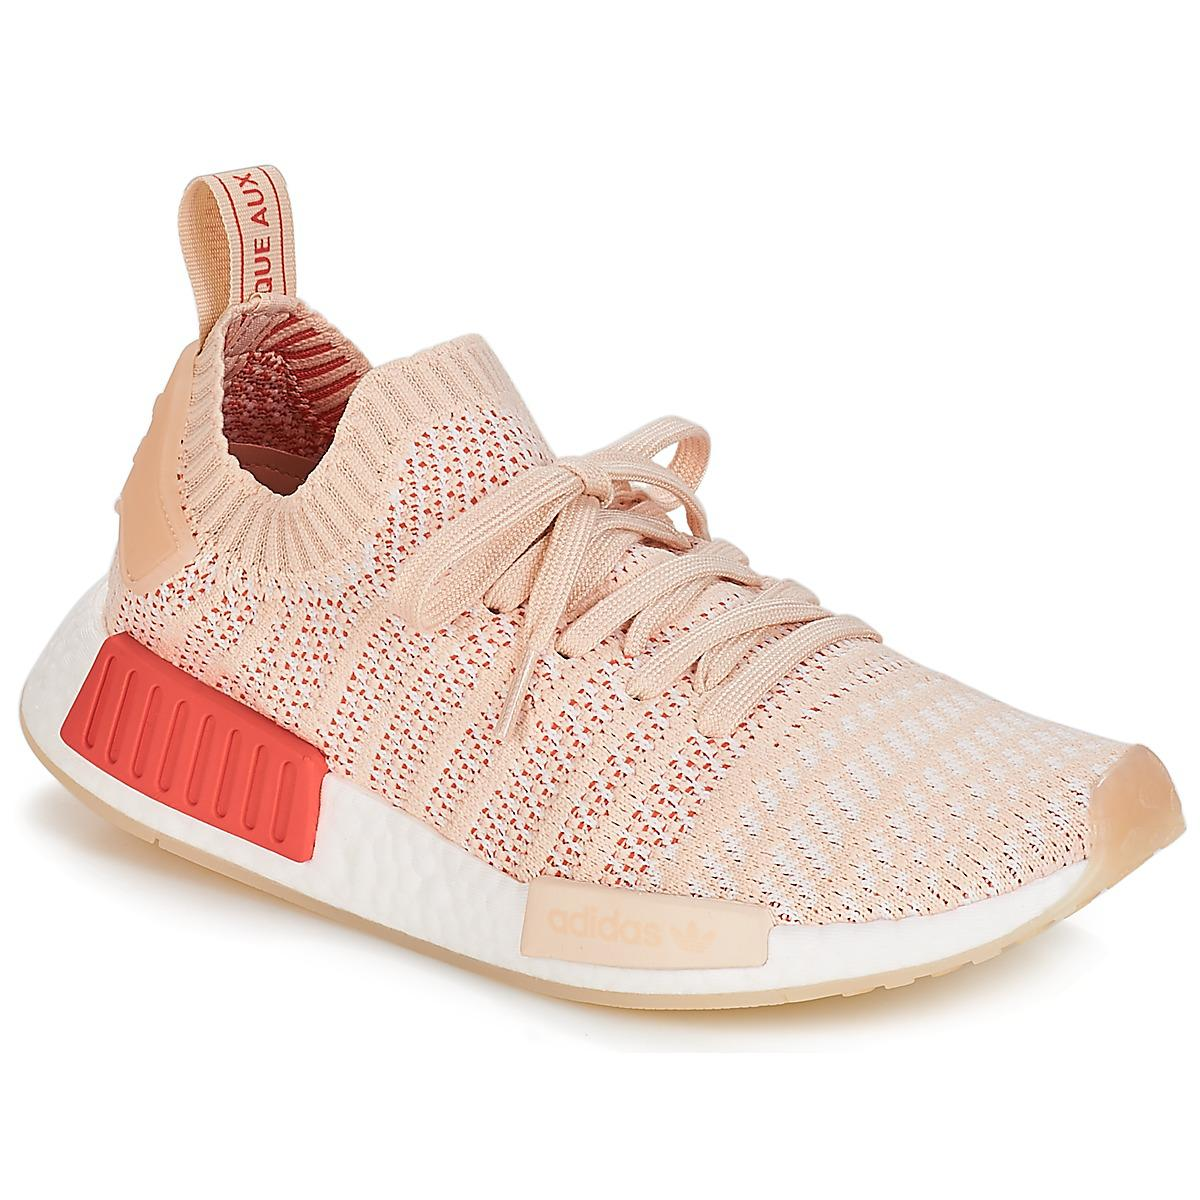 8ebecd758eac4 adidas Nmd R1 Stlt Pk W Women s Shoes (trainers) In Multicolour in ...